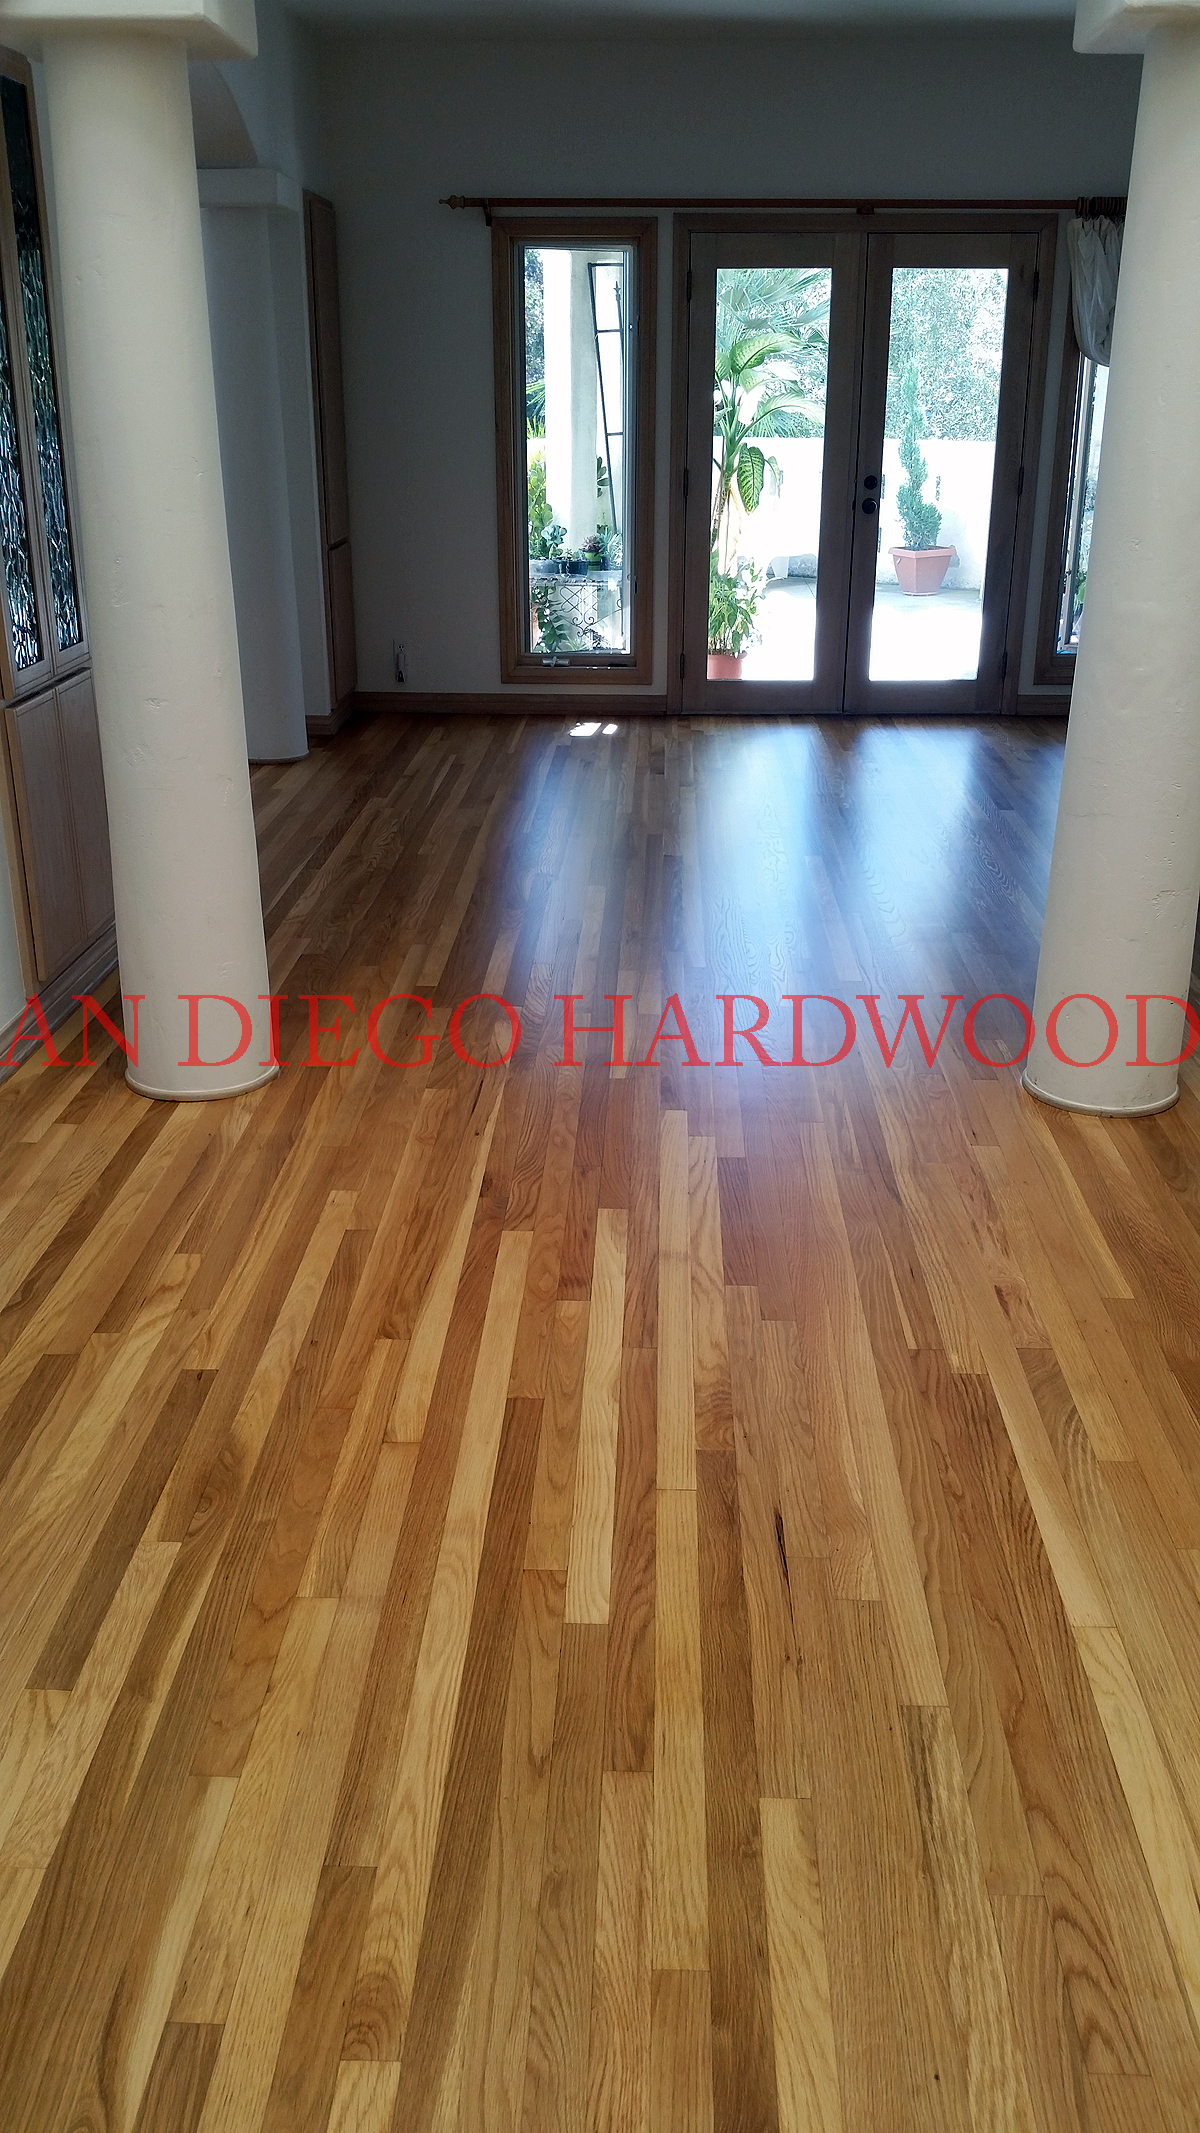 RESTORE WHITE OAK FLOORING. SAN DIEGO HARDWOOD FLOORING. WHITE OAK REFINISH SD